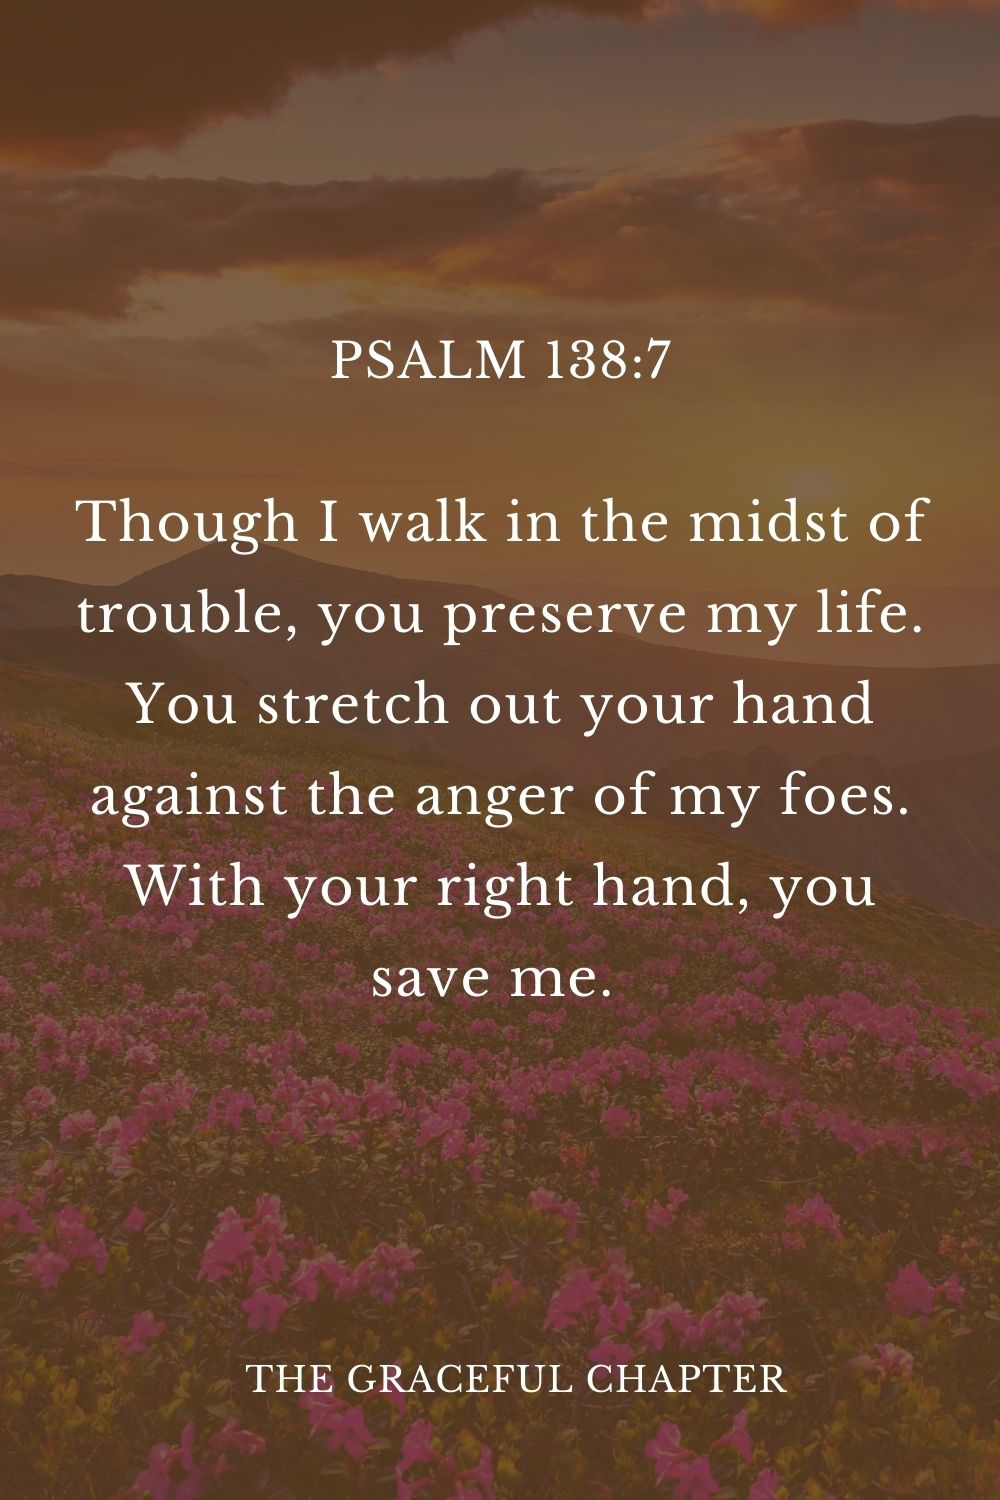 Though I walk in the midst of trouble, you preserve my life. You stretch out your hand against the anger of my foes. With your right hand, you save me.  Psalm 138:7